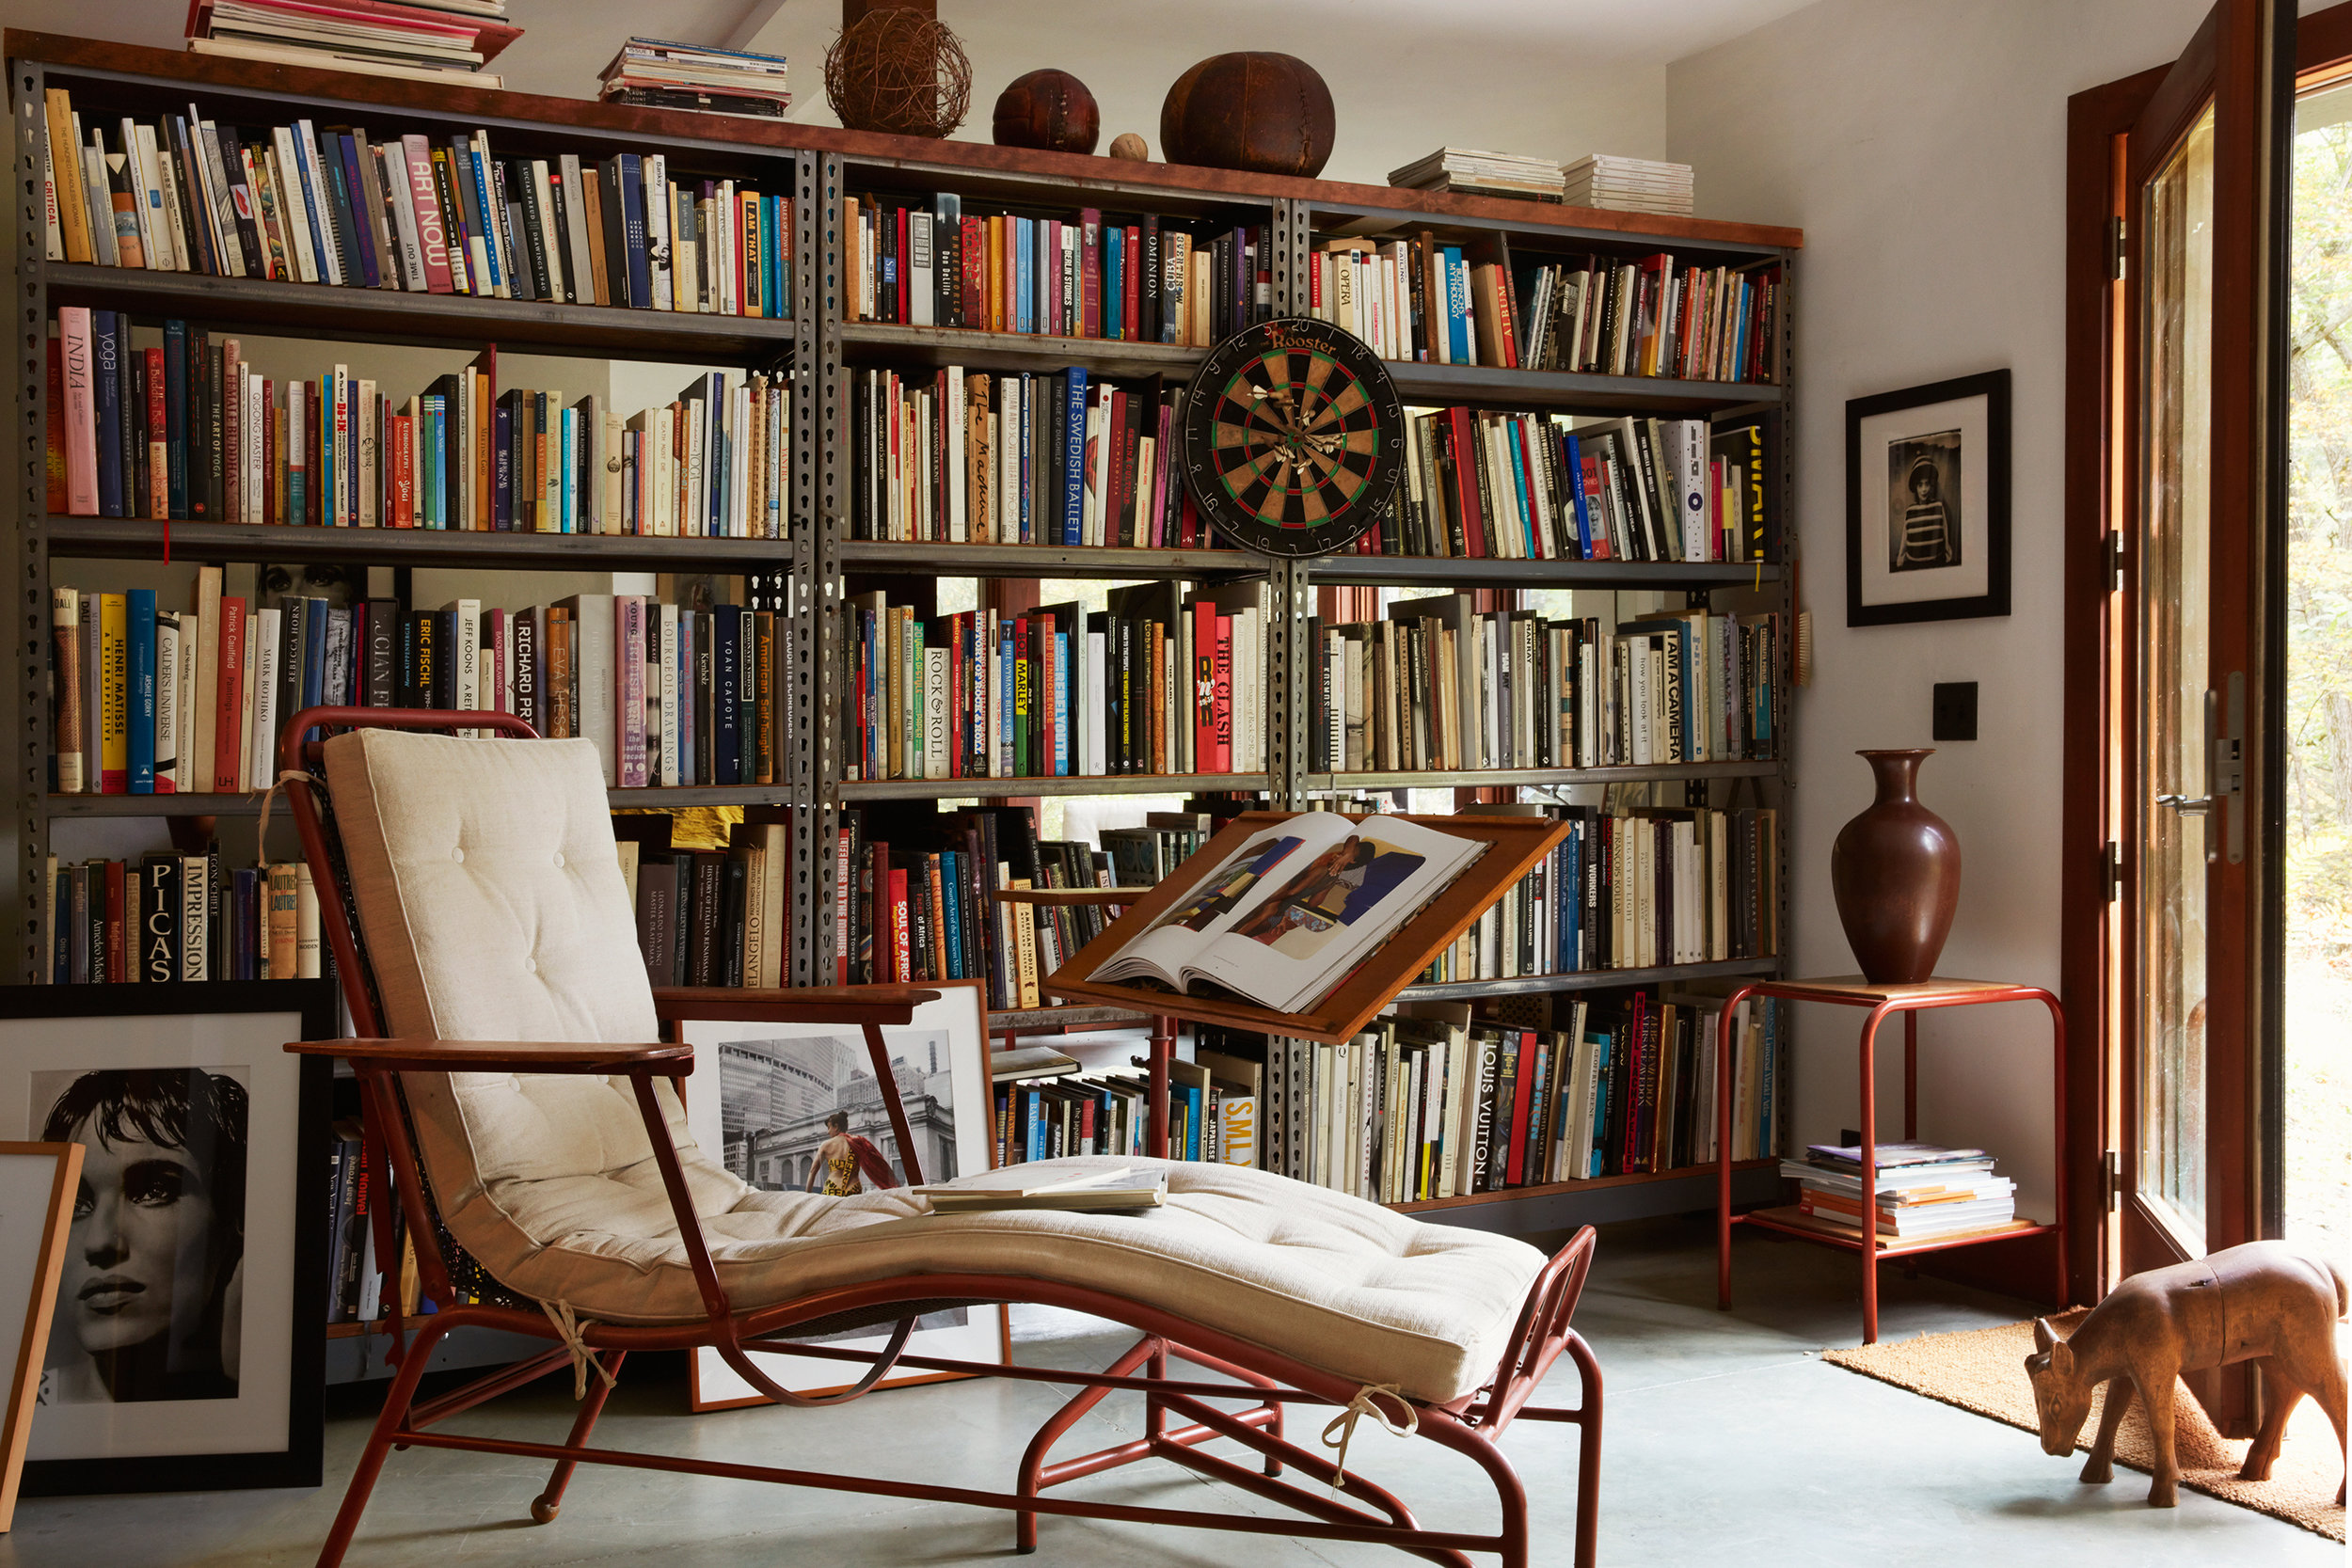 The couple favors French mid-century furniture such as Guillerme & Chambron, Maurice Pre and Jean Proué.